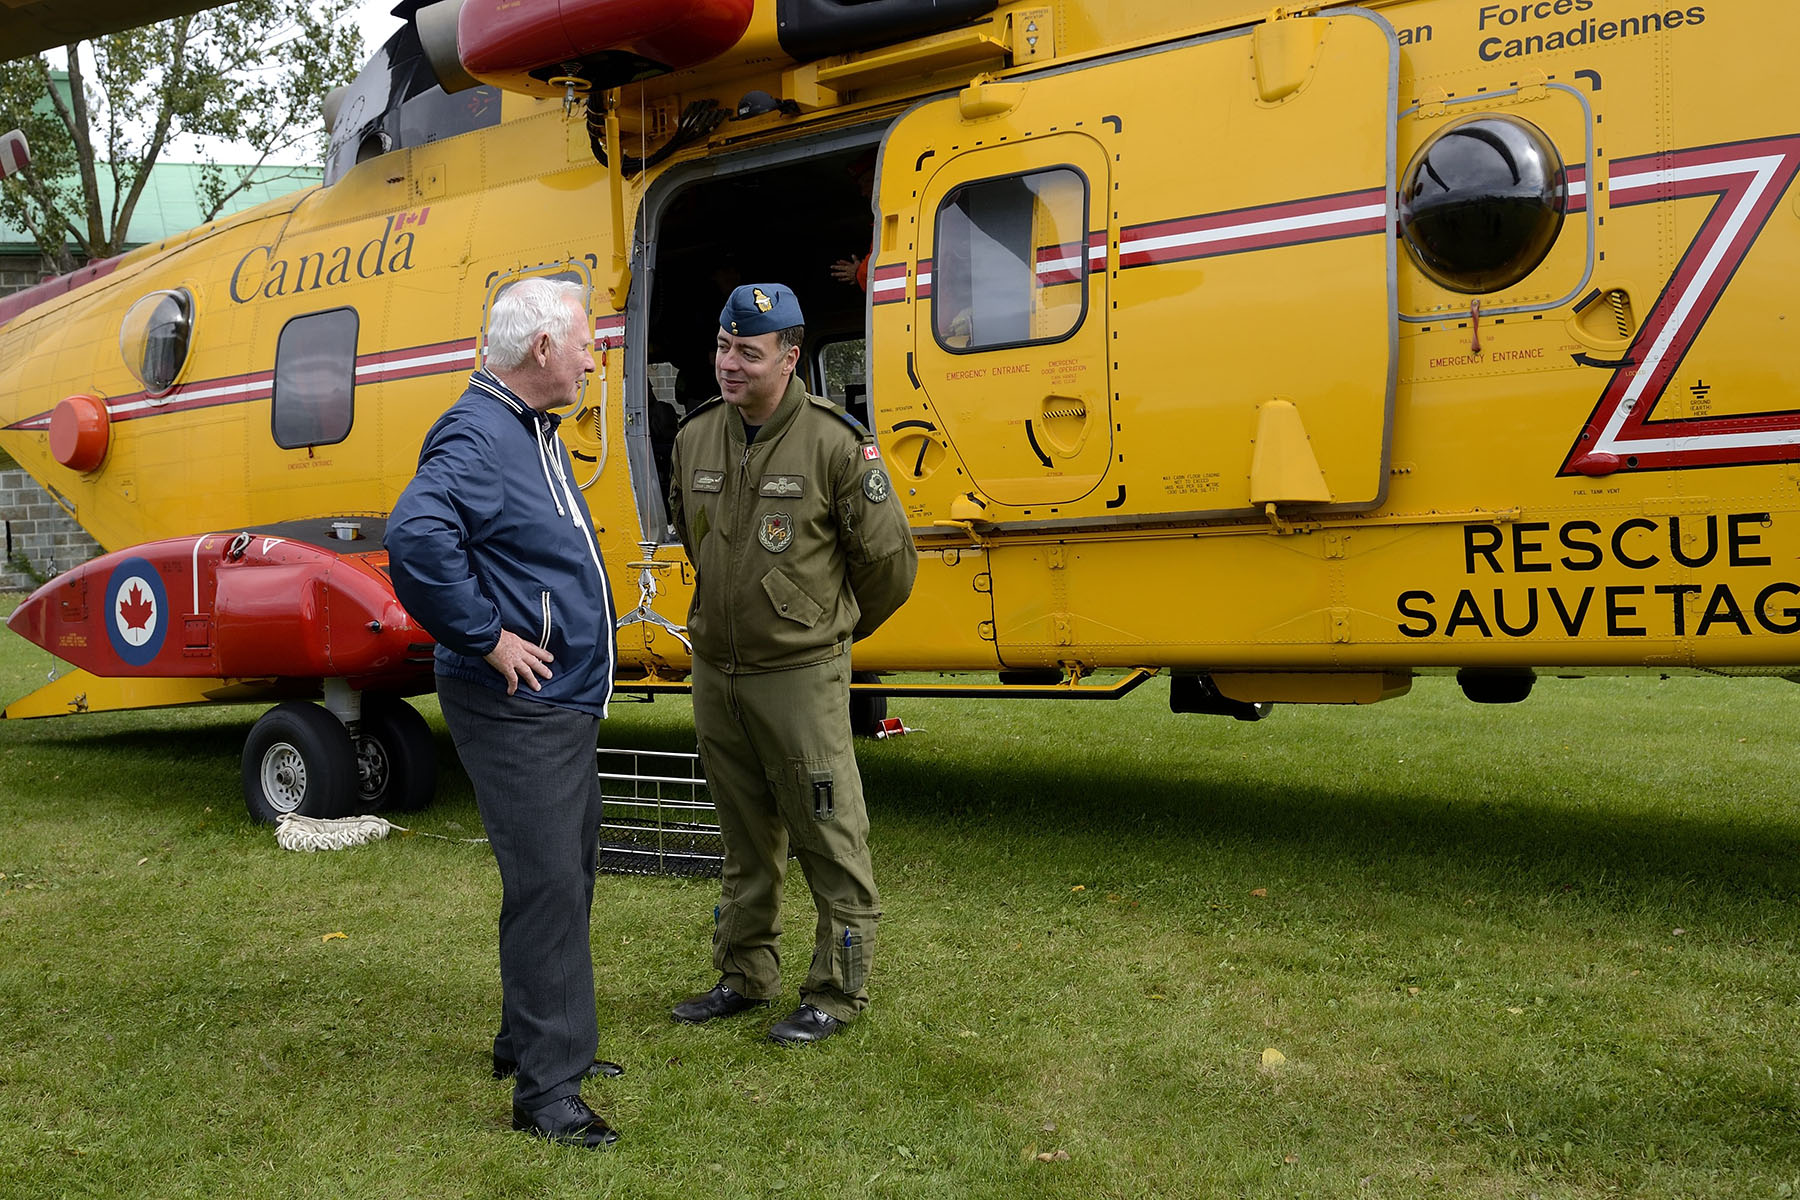 Static helicopters, including a Search and Rescue Aircraft (CH-149 Cormorant), were on display.